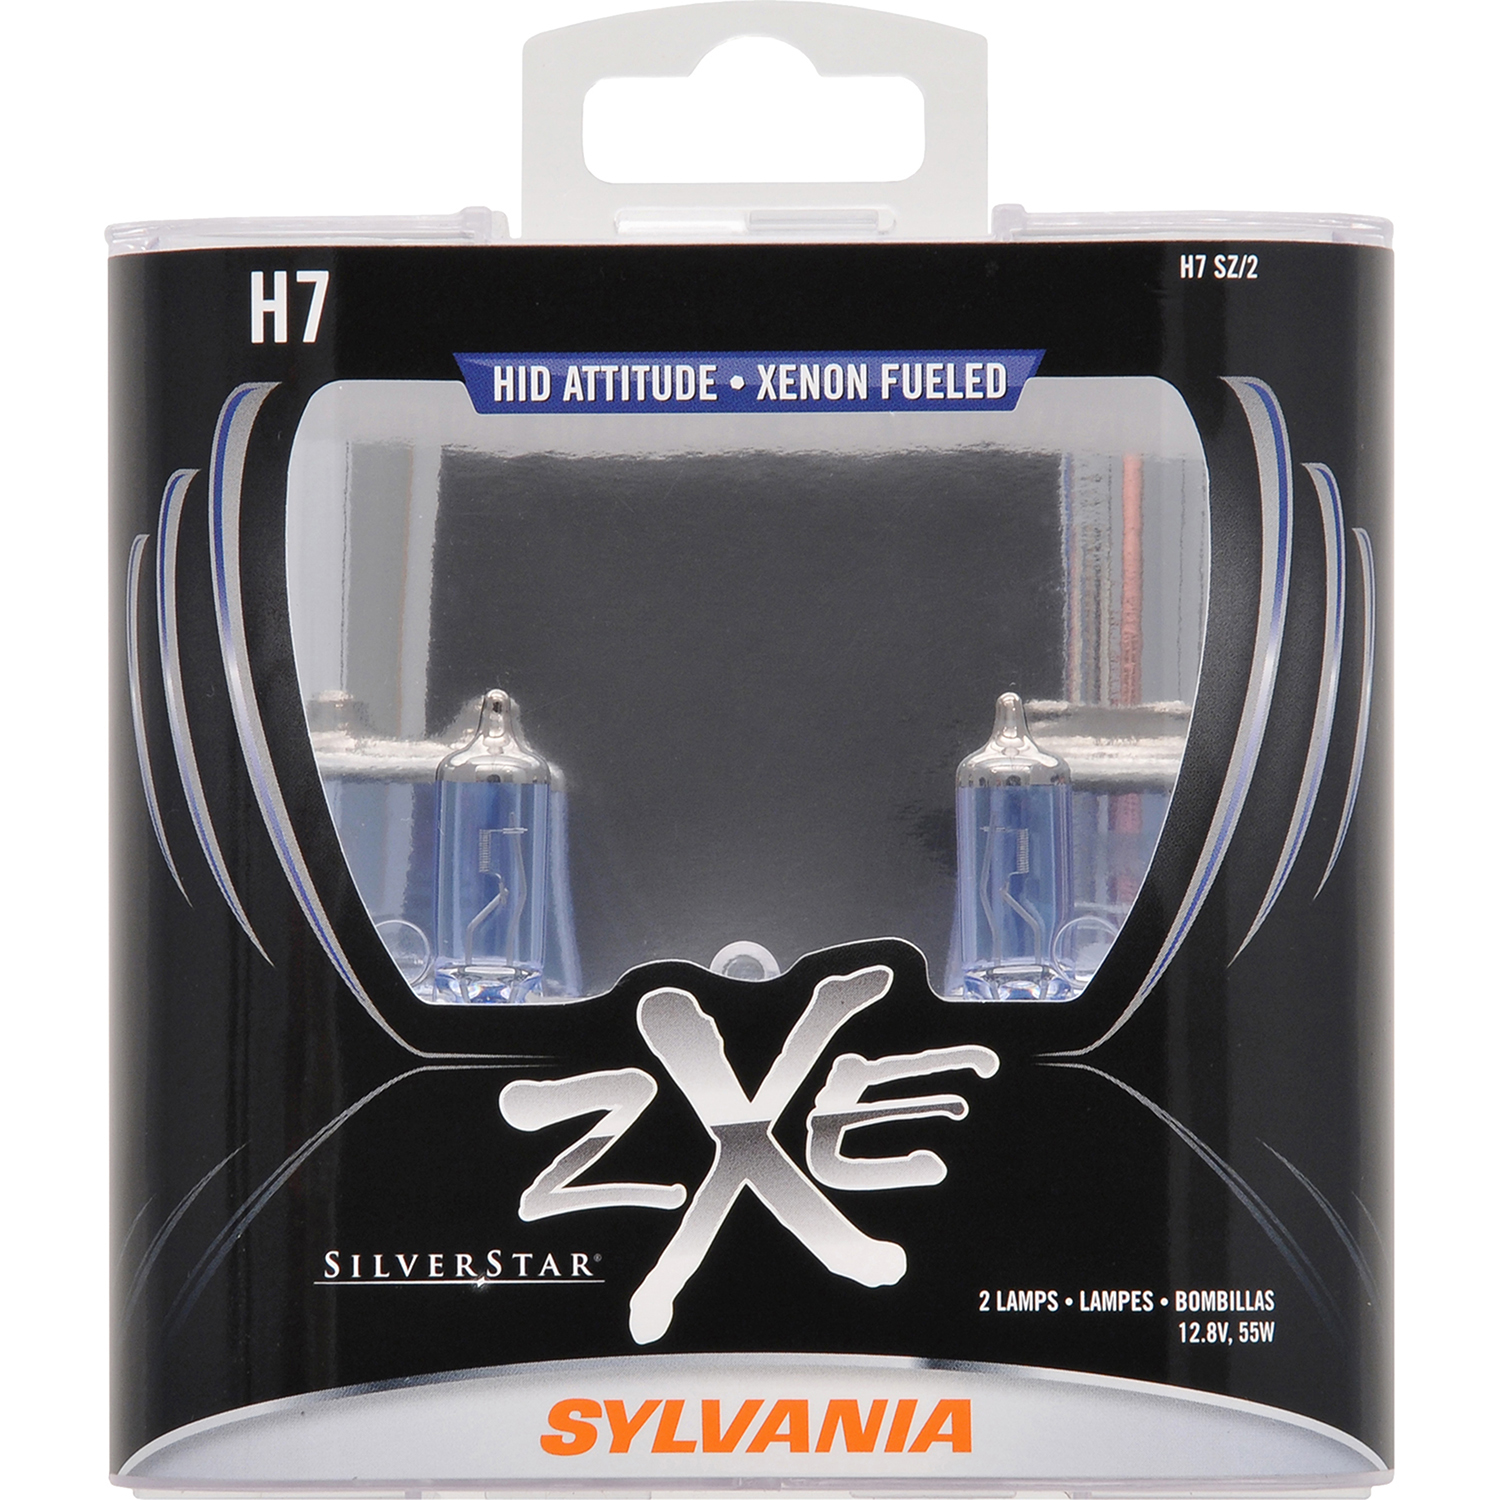 SYLVANIA H7 SilverStar zXe Halogen Headlight Bulb, Pack of 2